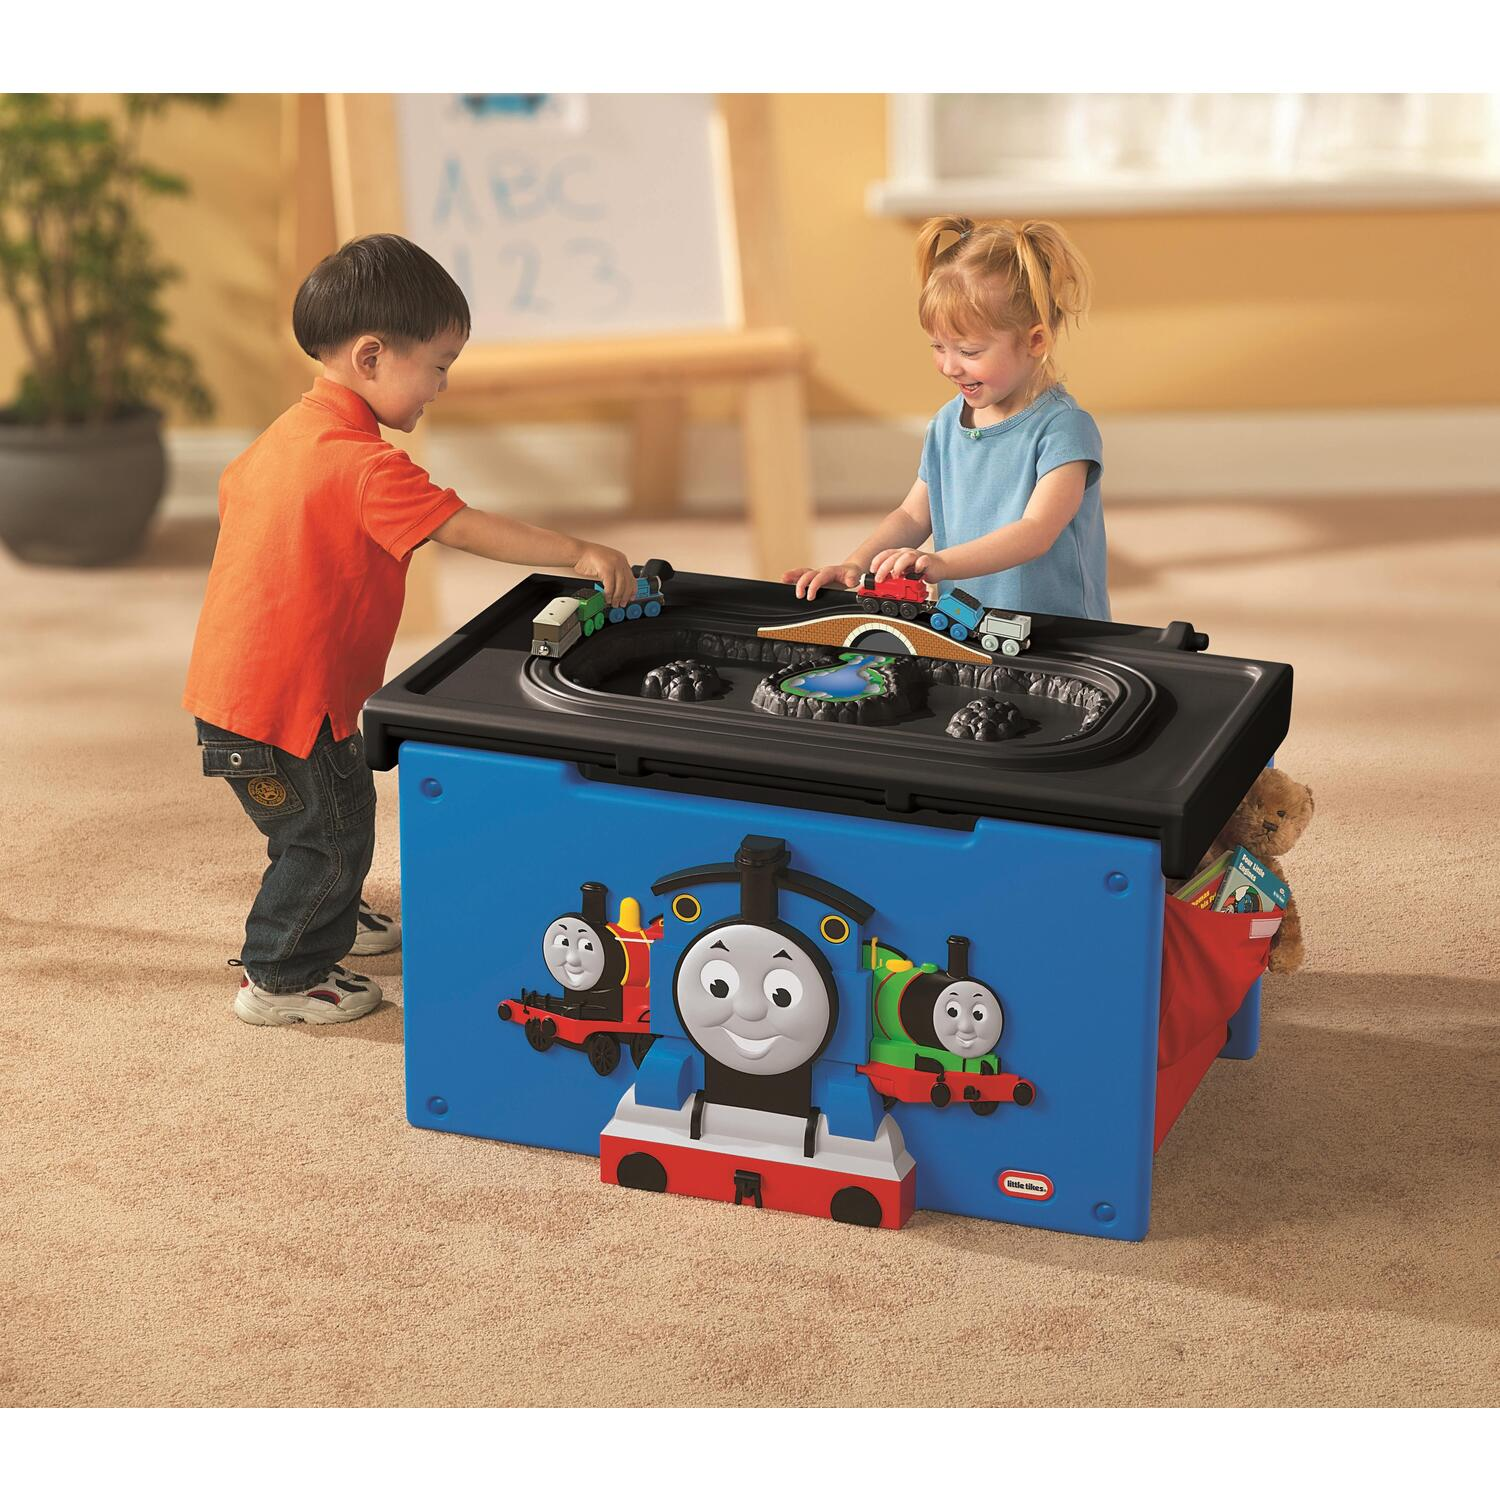 Toys And Friends : Little tikes thomas friends™ toy chest by oj commerce